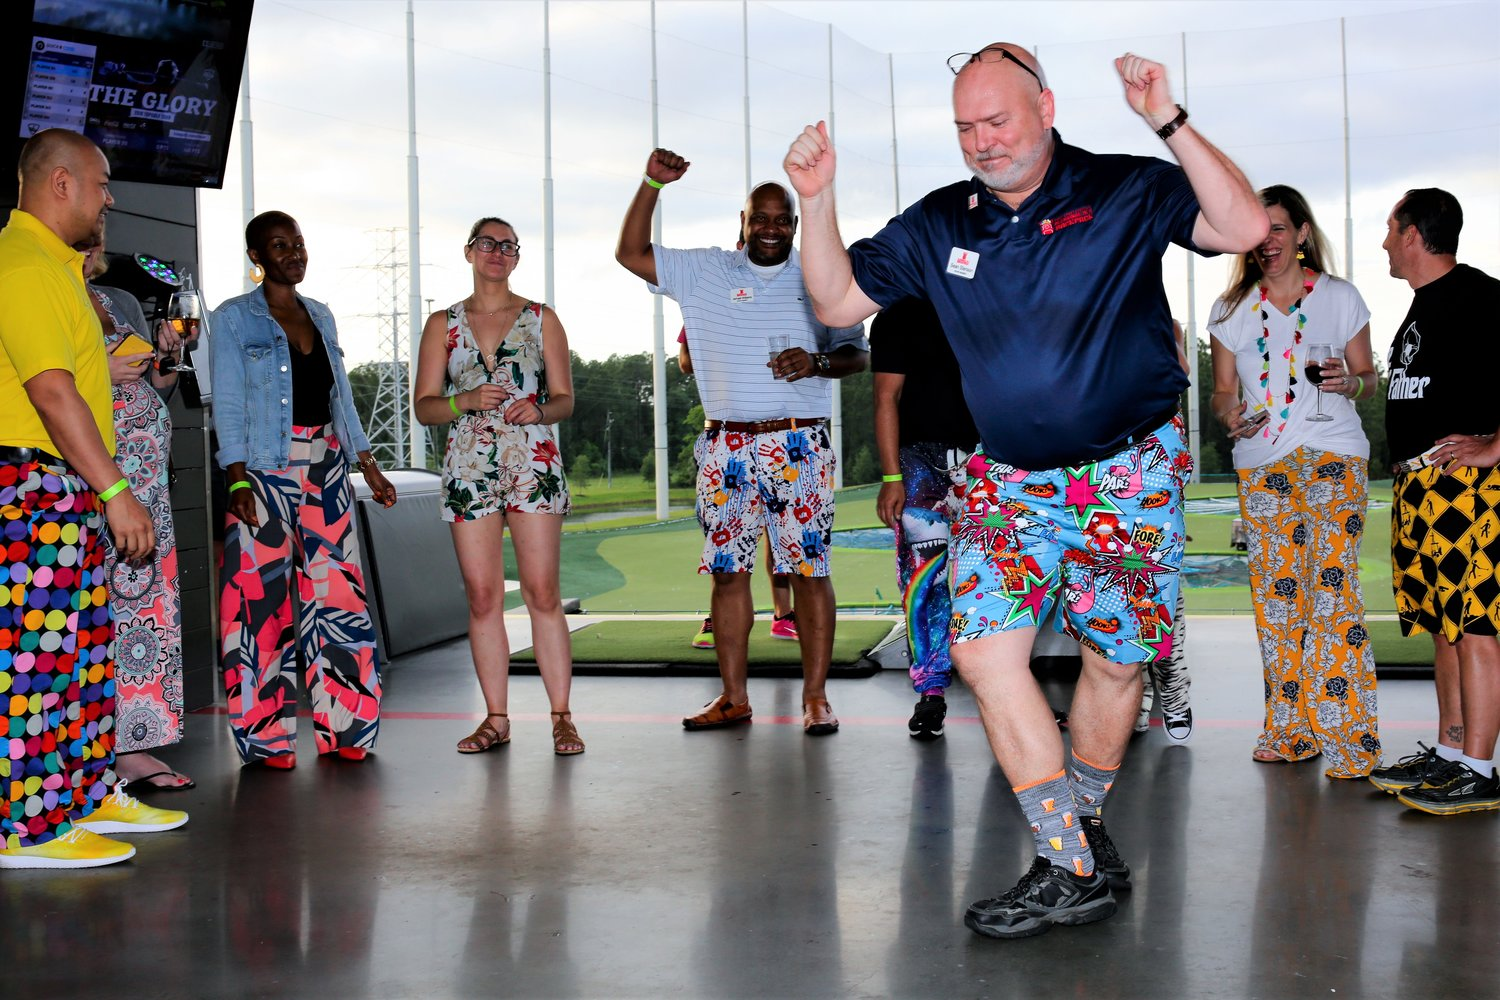 The 2019 Fancy Pants Fiesta was celebrated on the top floor of TopGolf in Jacksonville on May 5. Funds raised go directly to providing hunger-free weekends for local children through the nonprofit, Blessings in a Backpack.